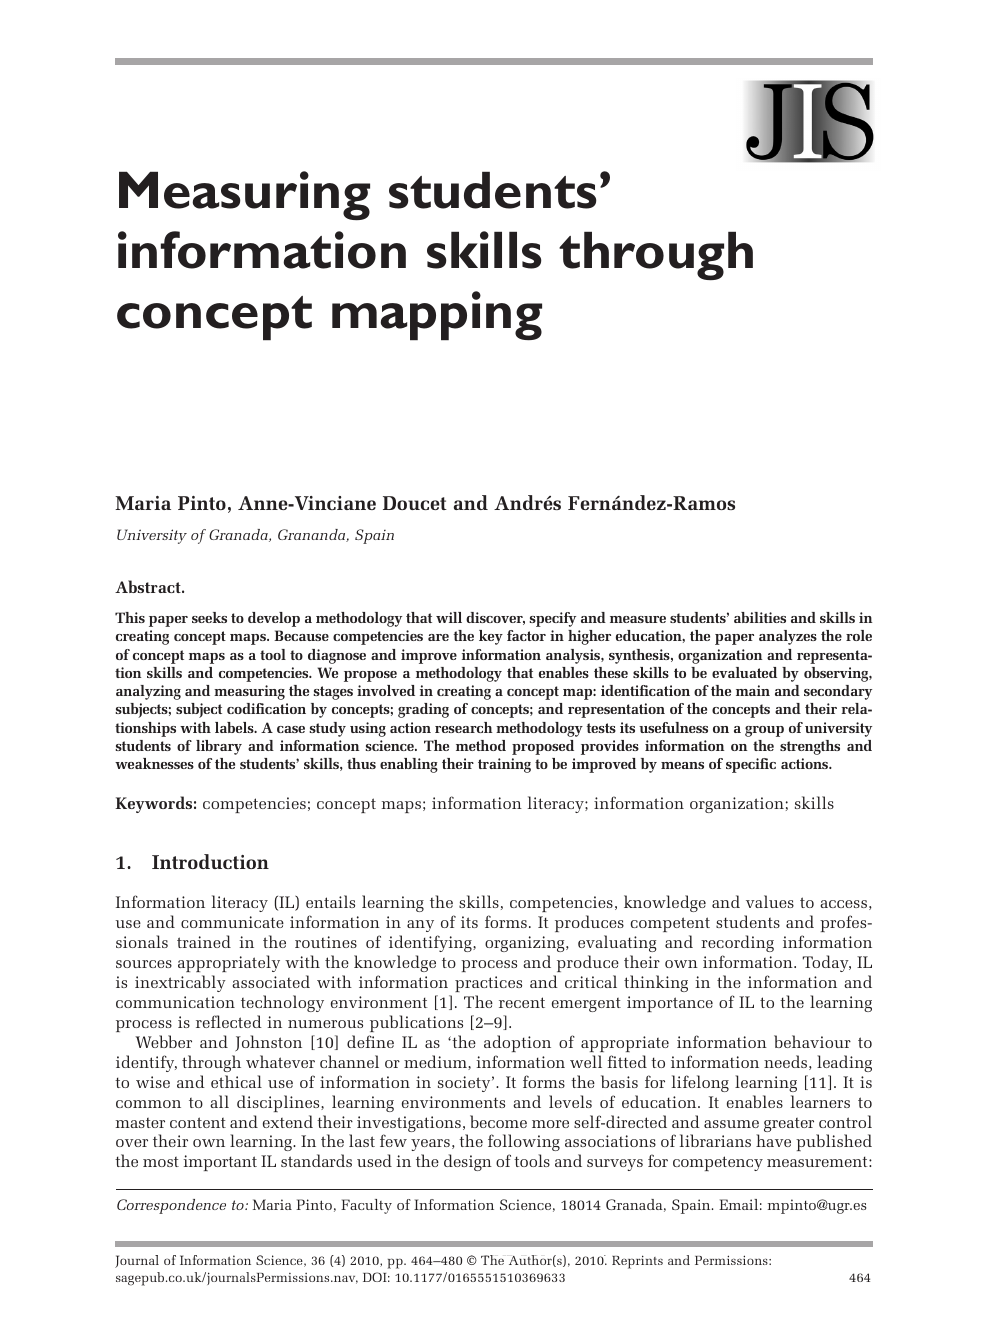 Concept Map Research Paper.Measuring Students Information Skills Through Concept Mapping